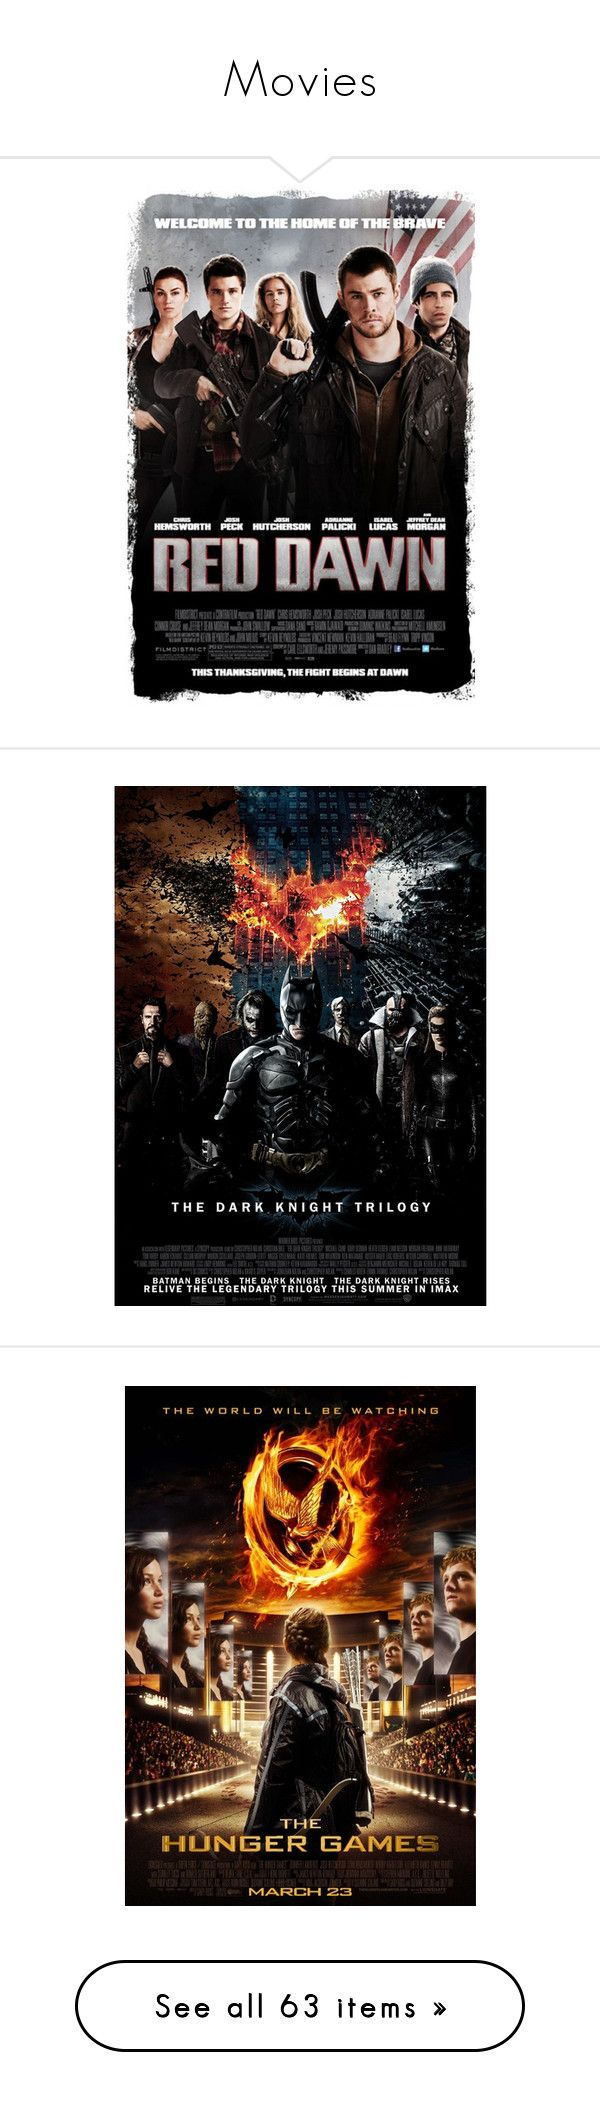 """""""Movies"""" by mermaidprincezz ❤ liked on Polyvore featuring movies, batman, backgrounds, hunger games, the hunger games, pictures, films, other, extras and random"""